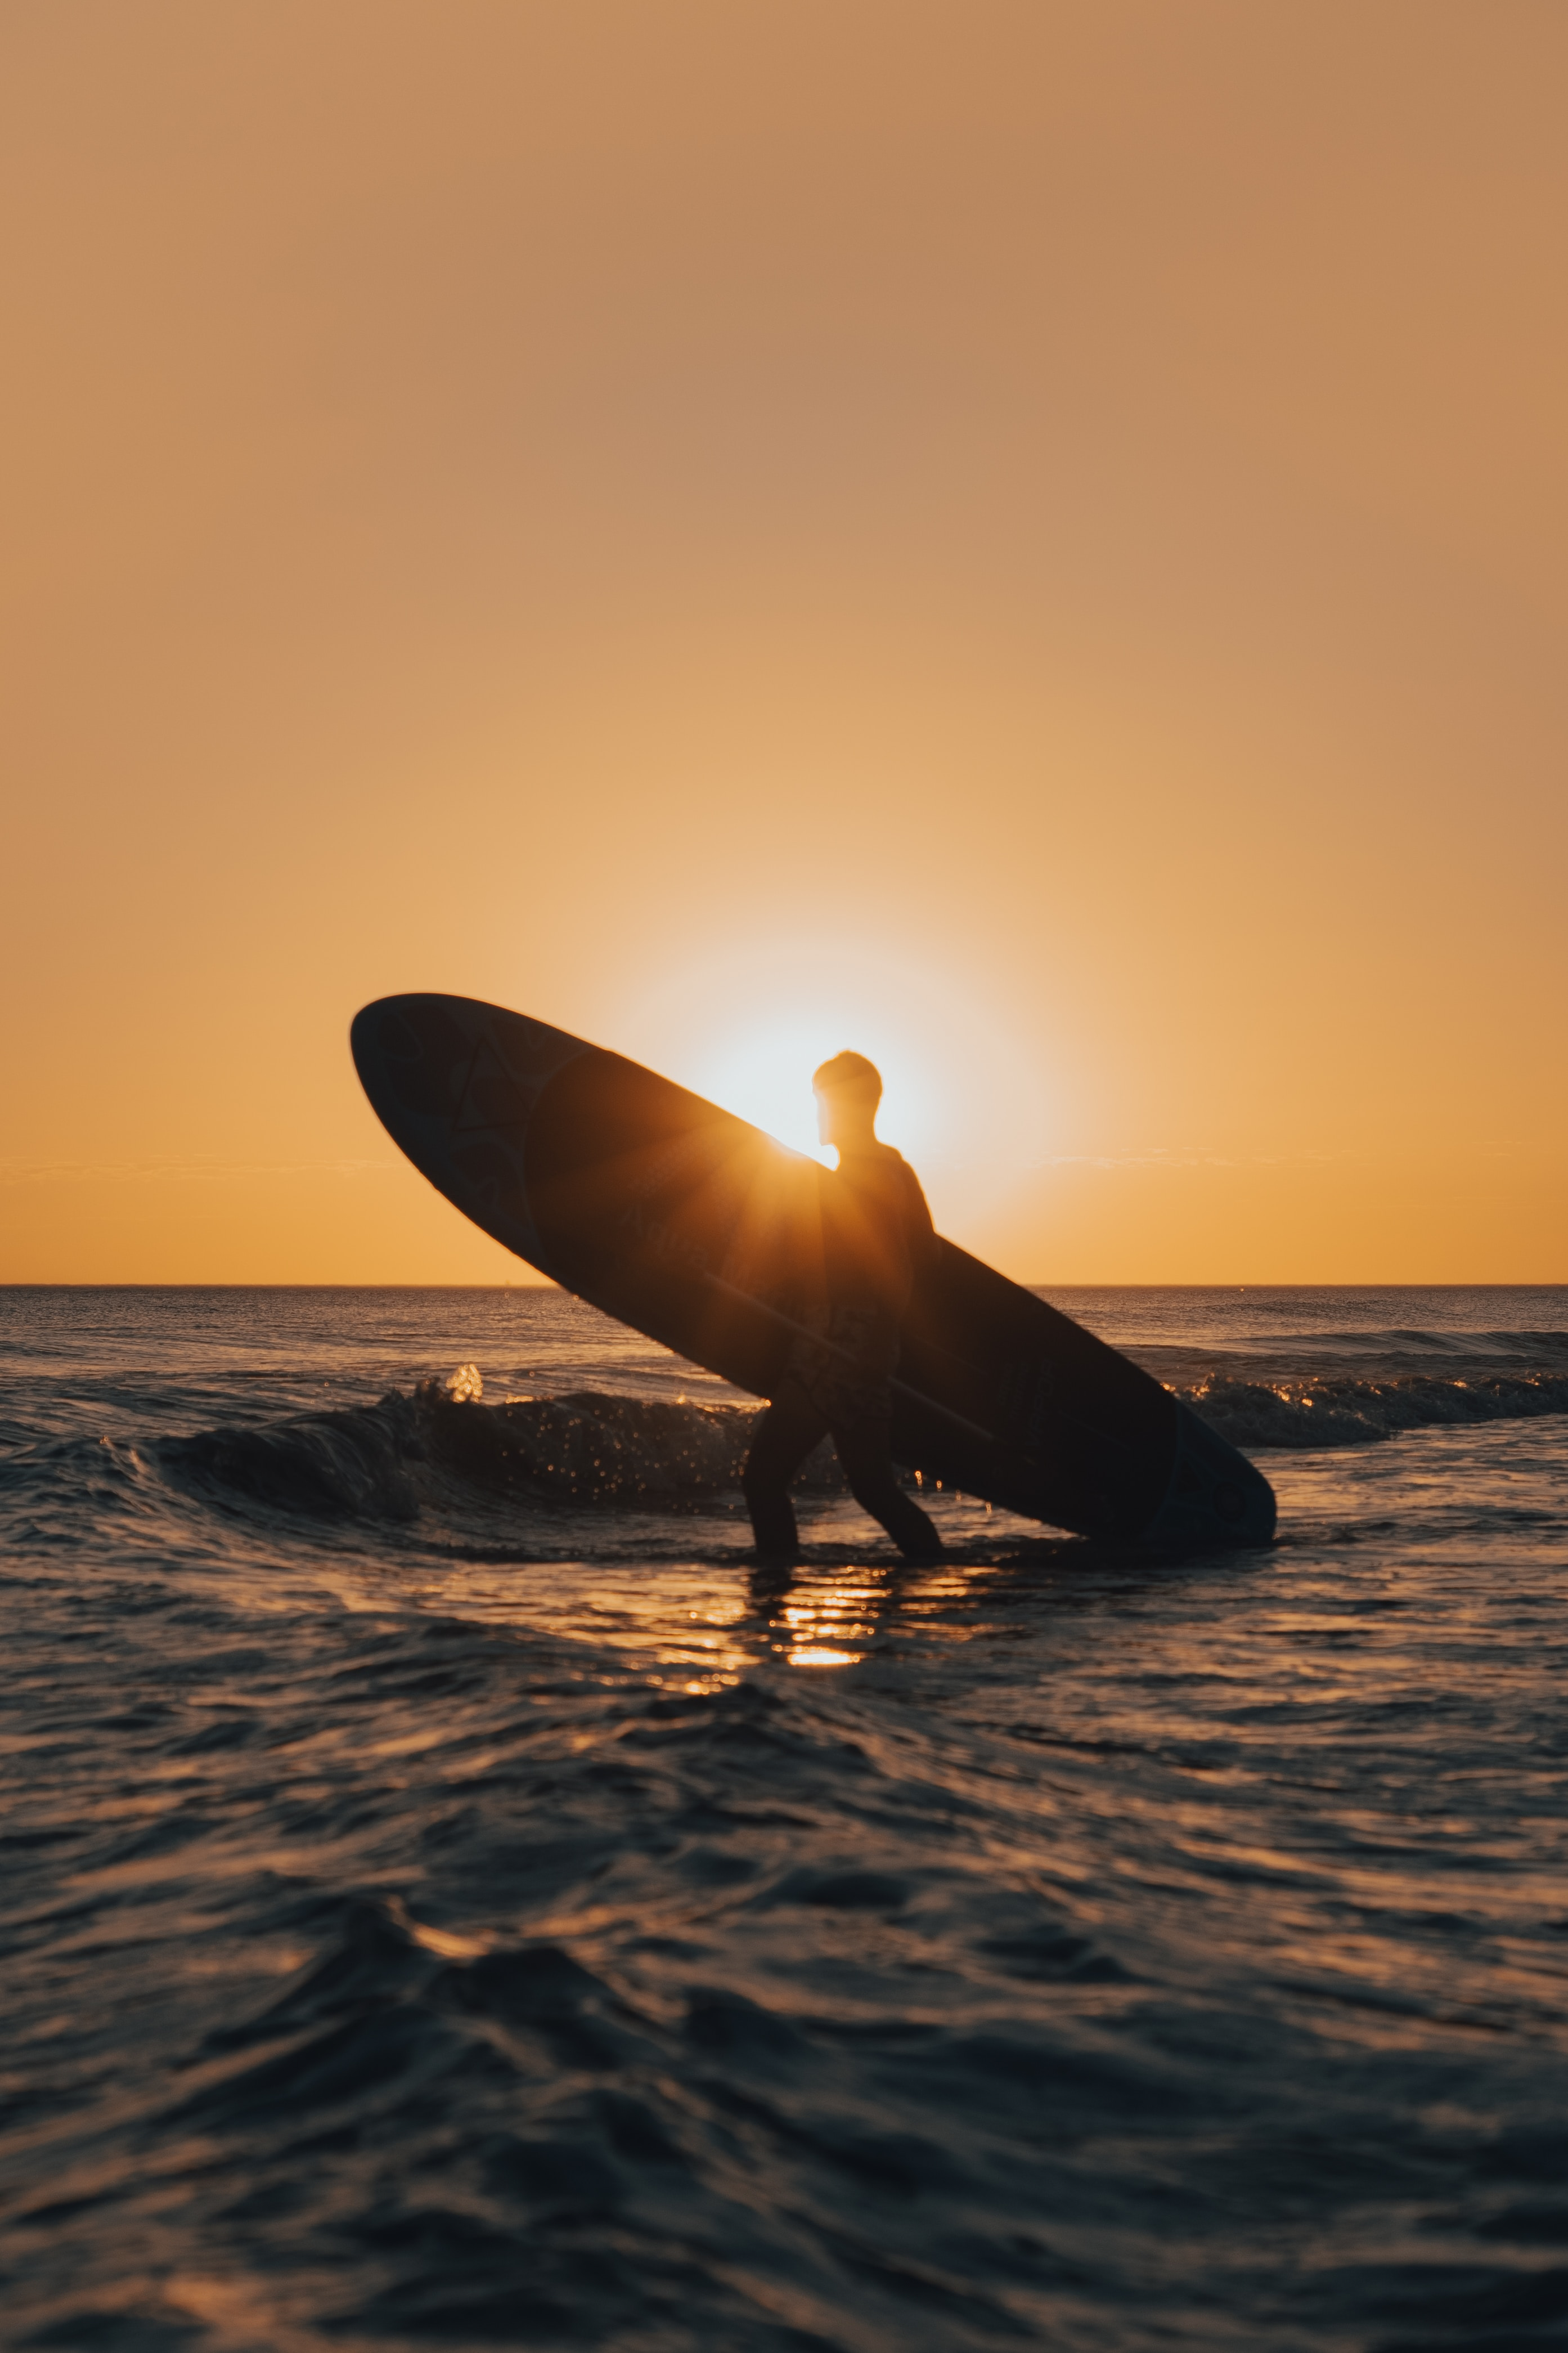 124569 download wallpaper Sports, Serfing, Surfer, Silhouette, Sunset, Waves screensavers and pictures for free